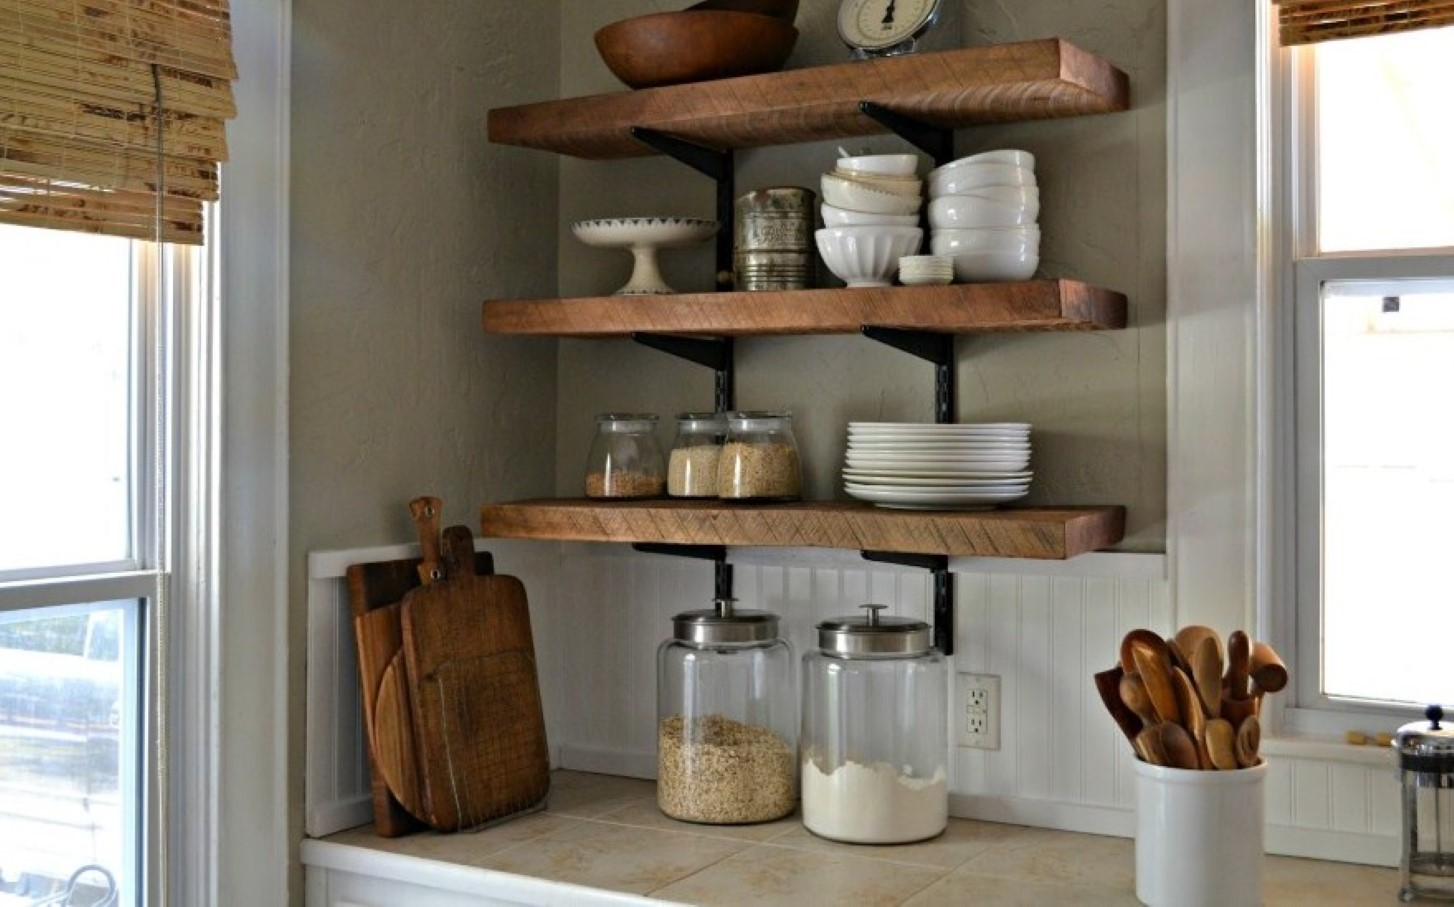 Go Creative with DIY Wall Shelves in Your Interior - HomesFeed